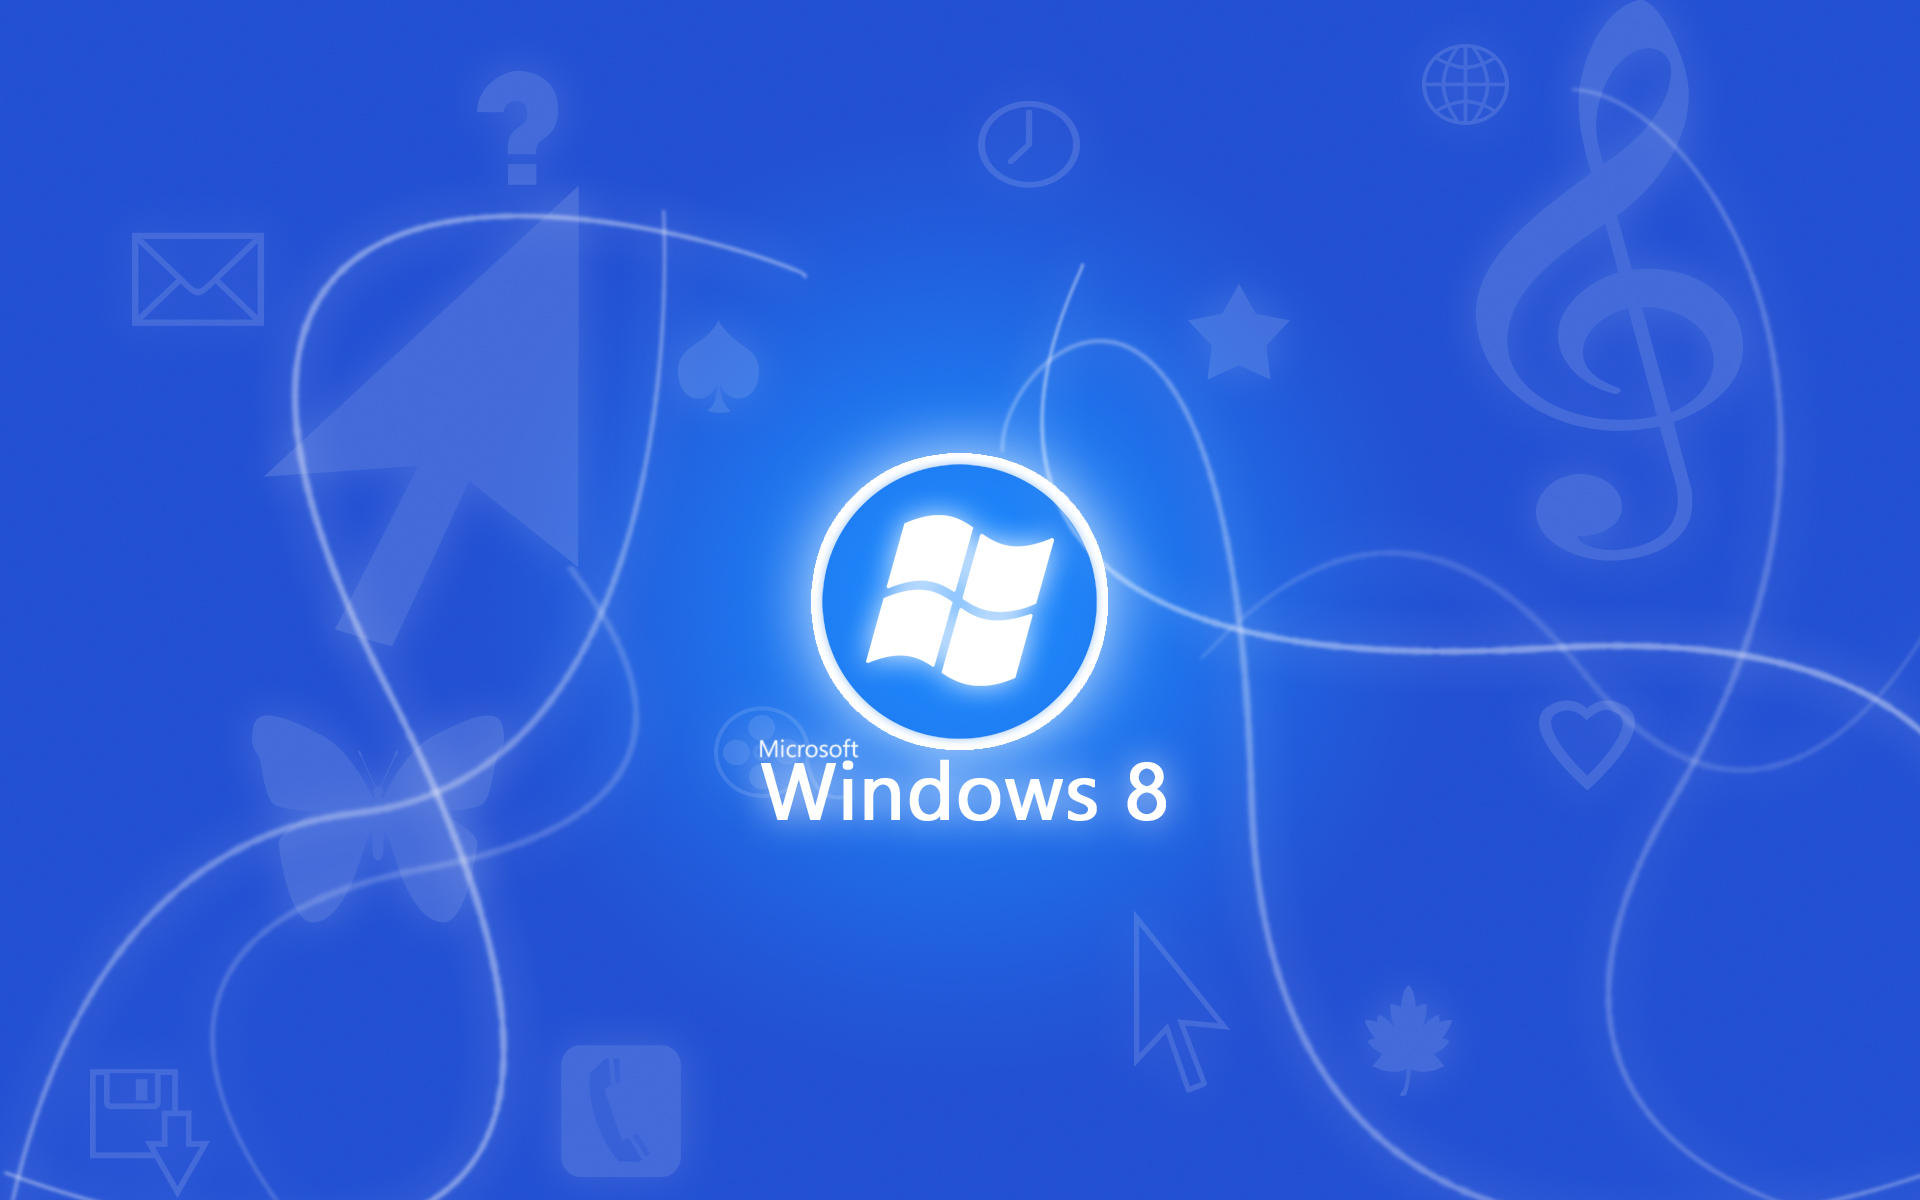 Windows 8 Gif Wallpaper